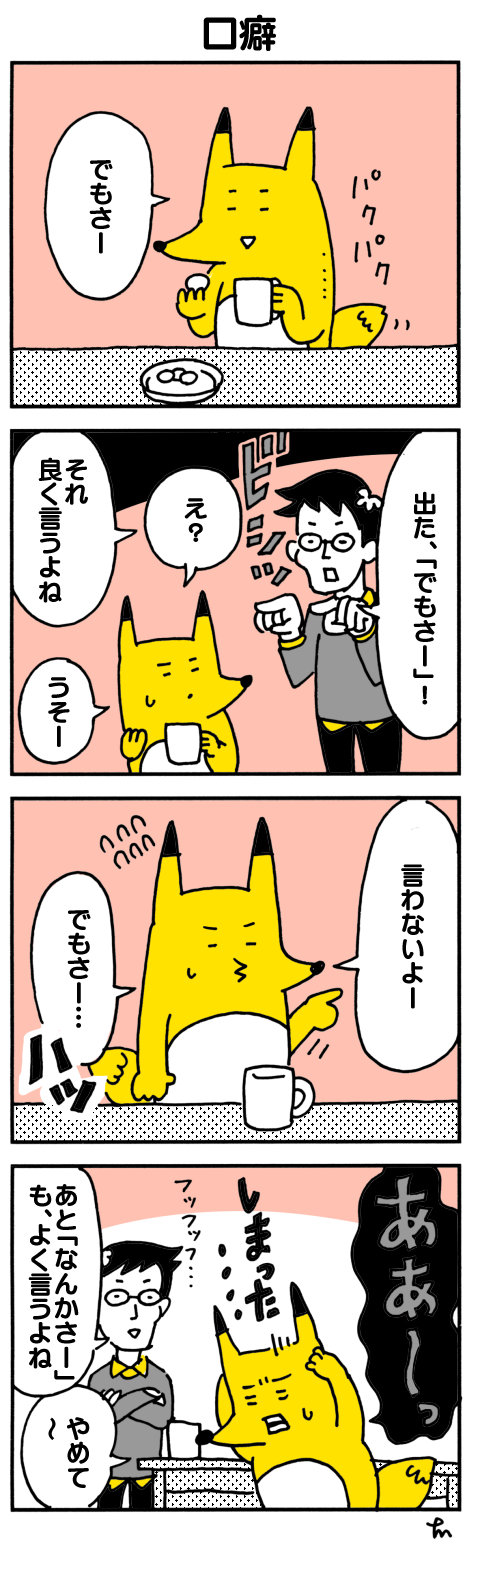 150129c.png